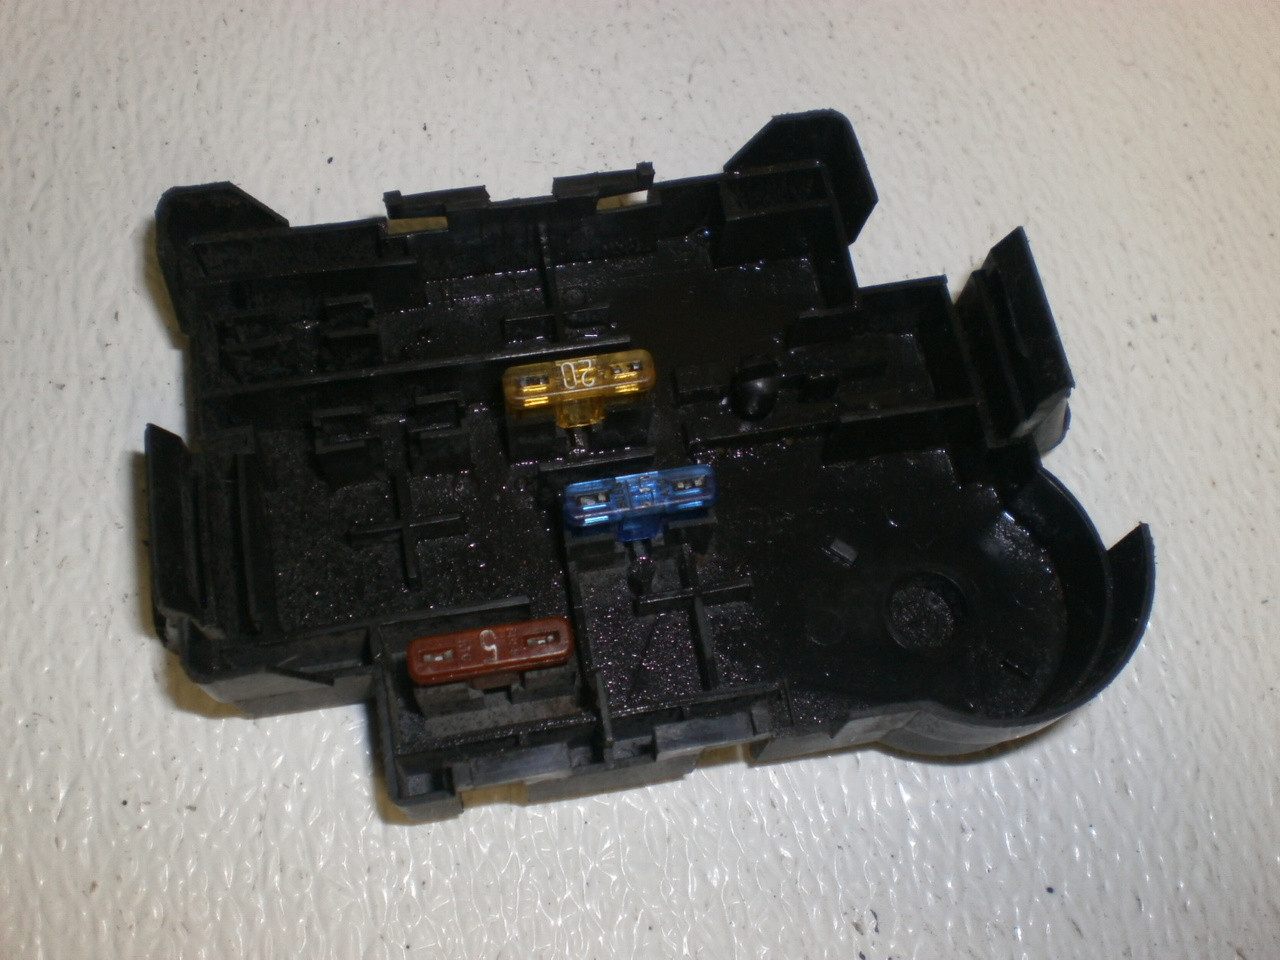 1998 2001 ford mustang center console wire harness loom1994 1998 ford mustang under dash fuse box cover lid shield location diagram f1ab 14a003 aa